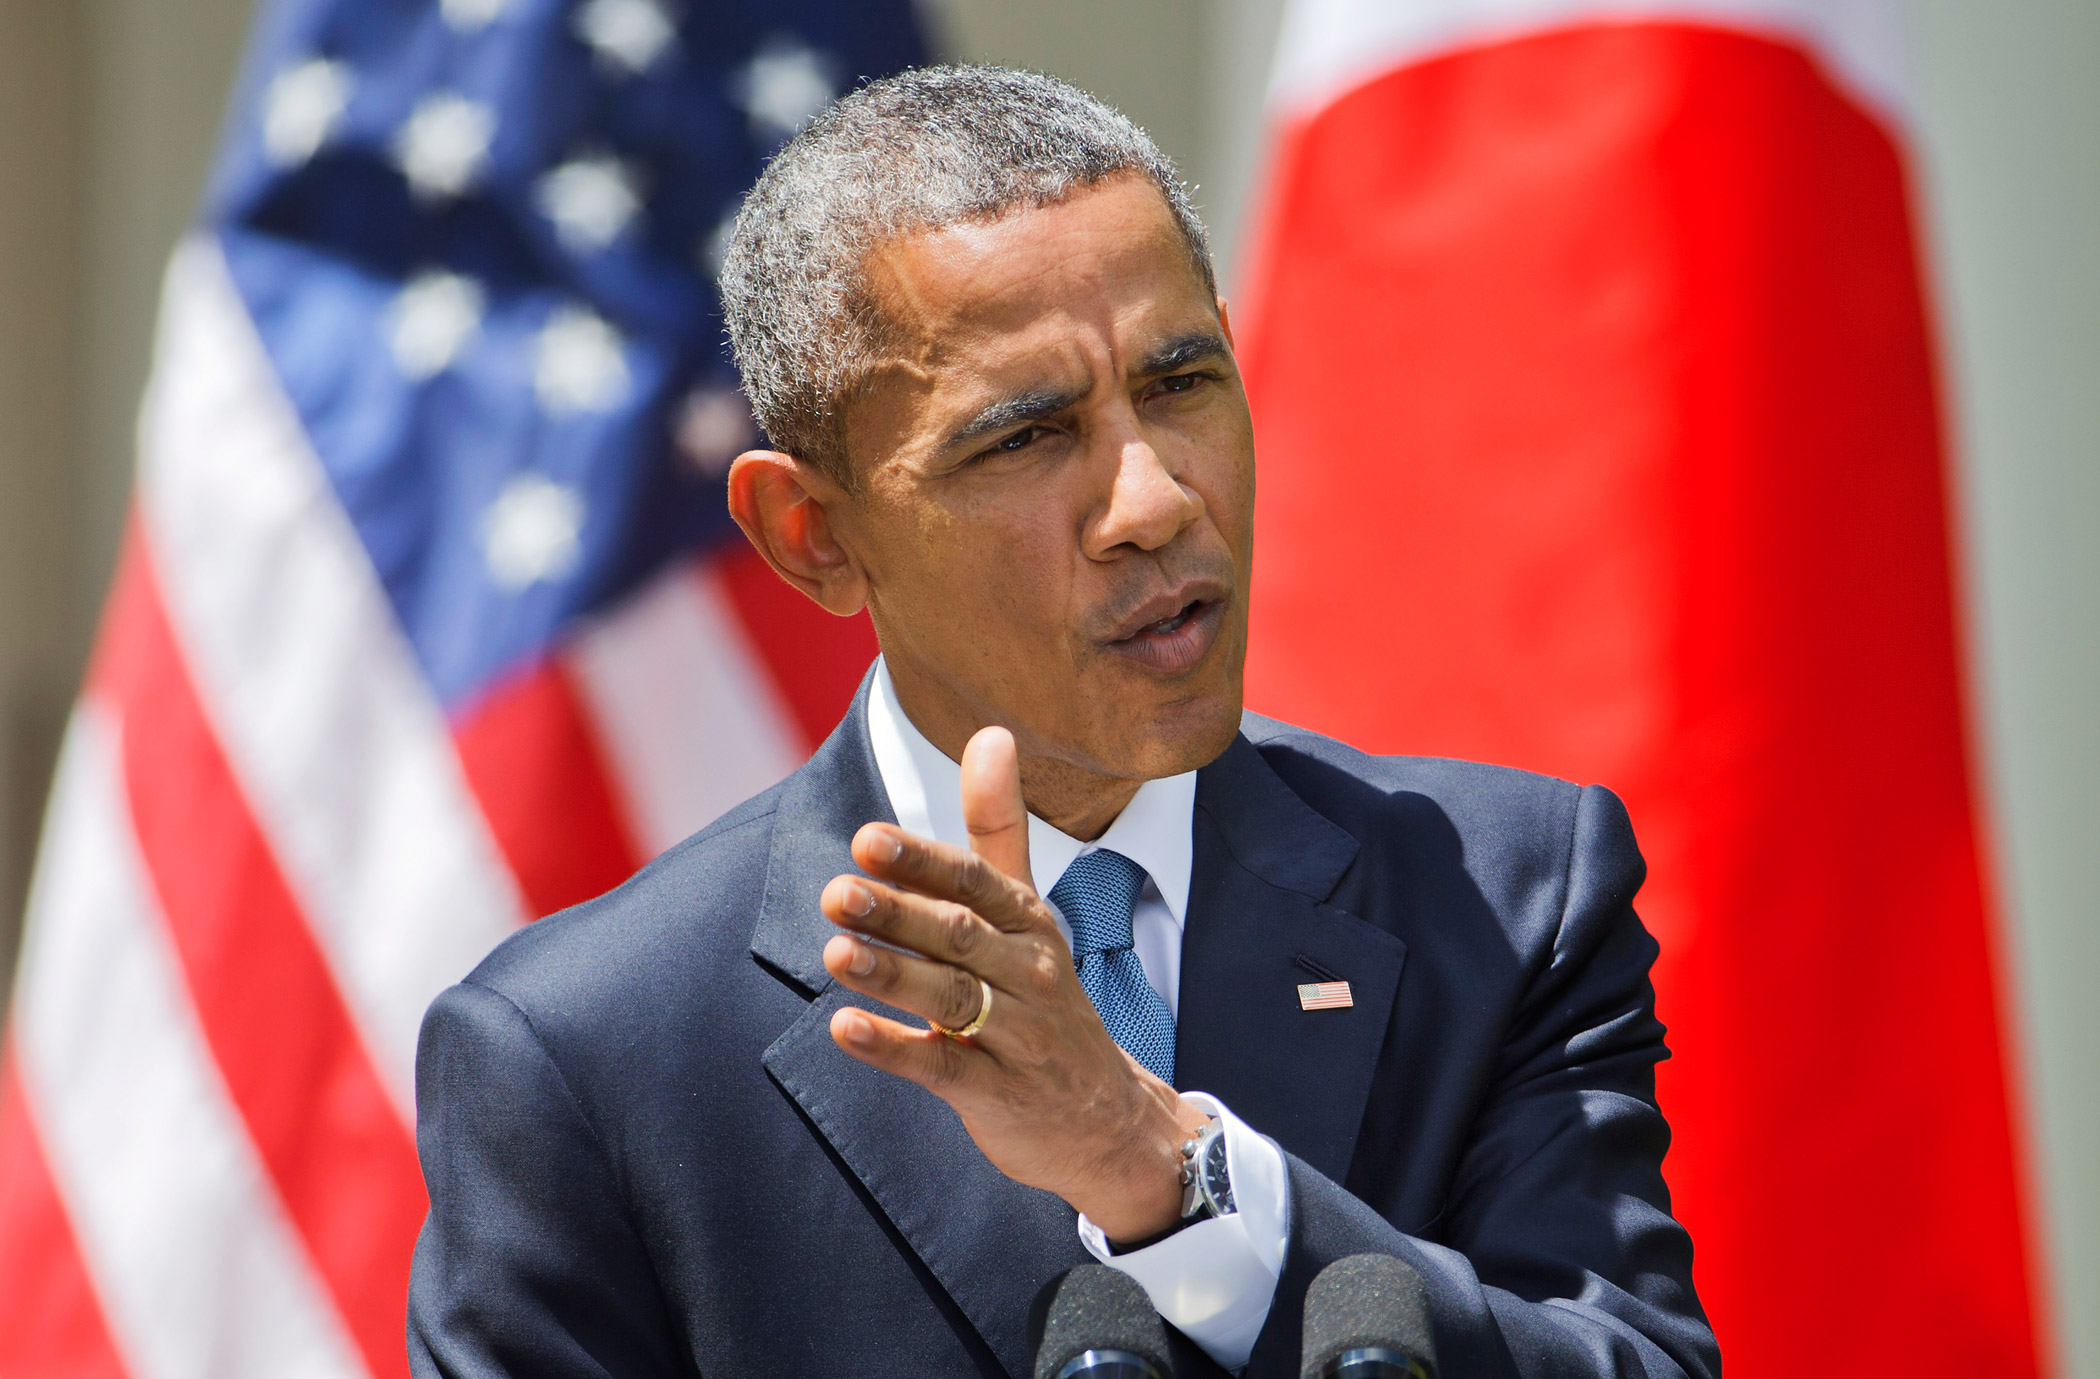 President Barack Obama speaks about recent unrest in Baltimore during a joint news conference with Japanese Prime Minister Shinzo Abe on April 28, 2015, in the Rose Garden of the White House in Washington.